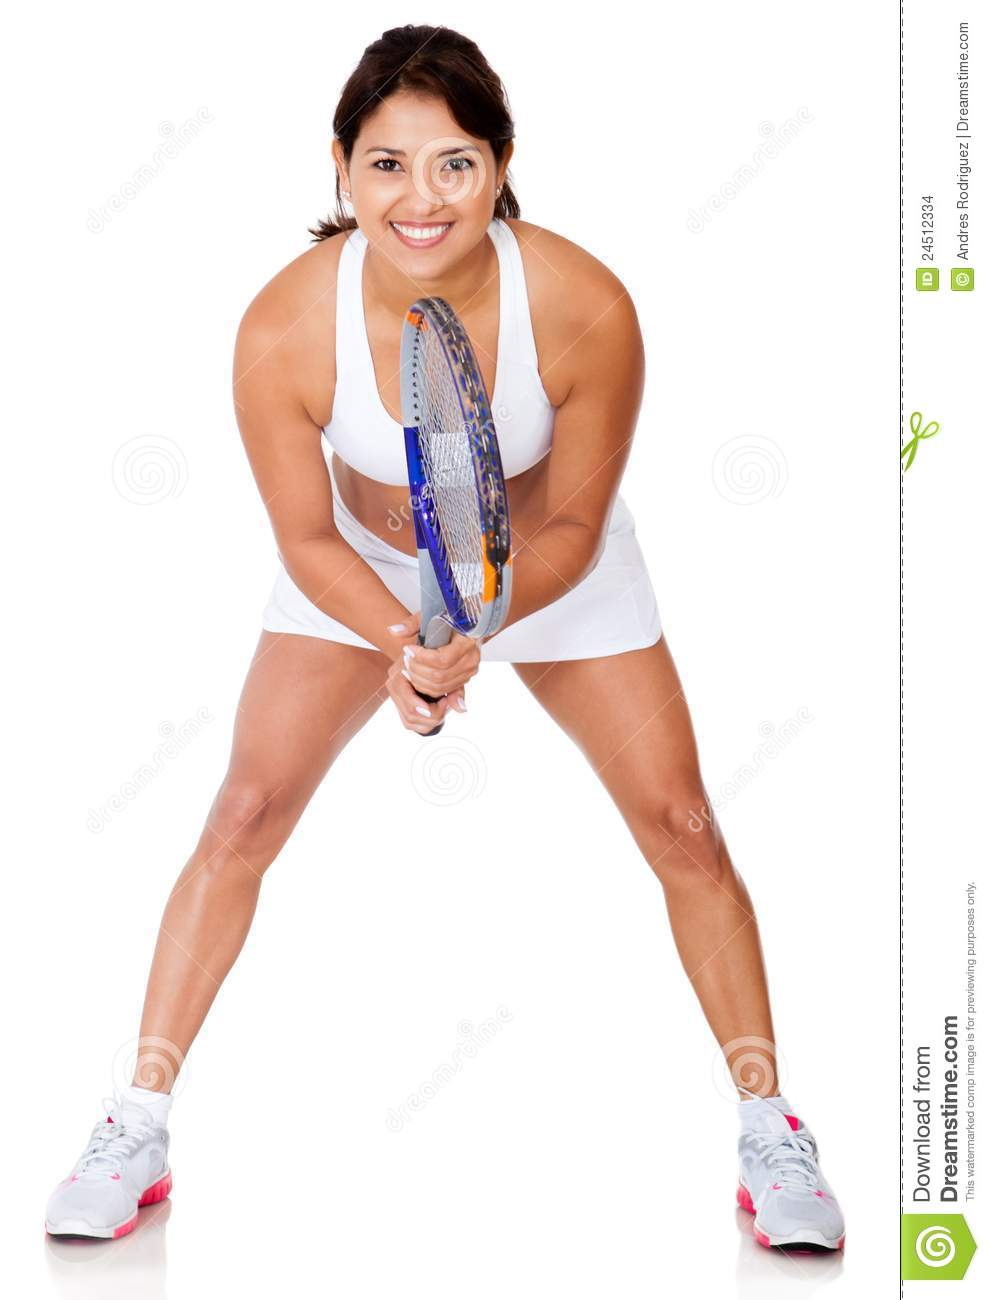 More similar stock images of female tennis player